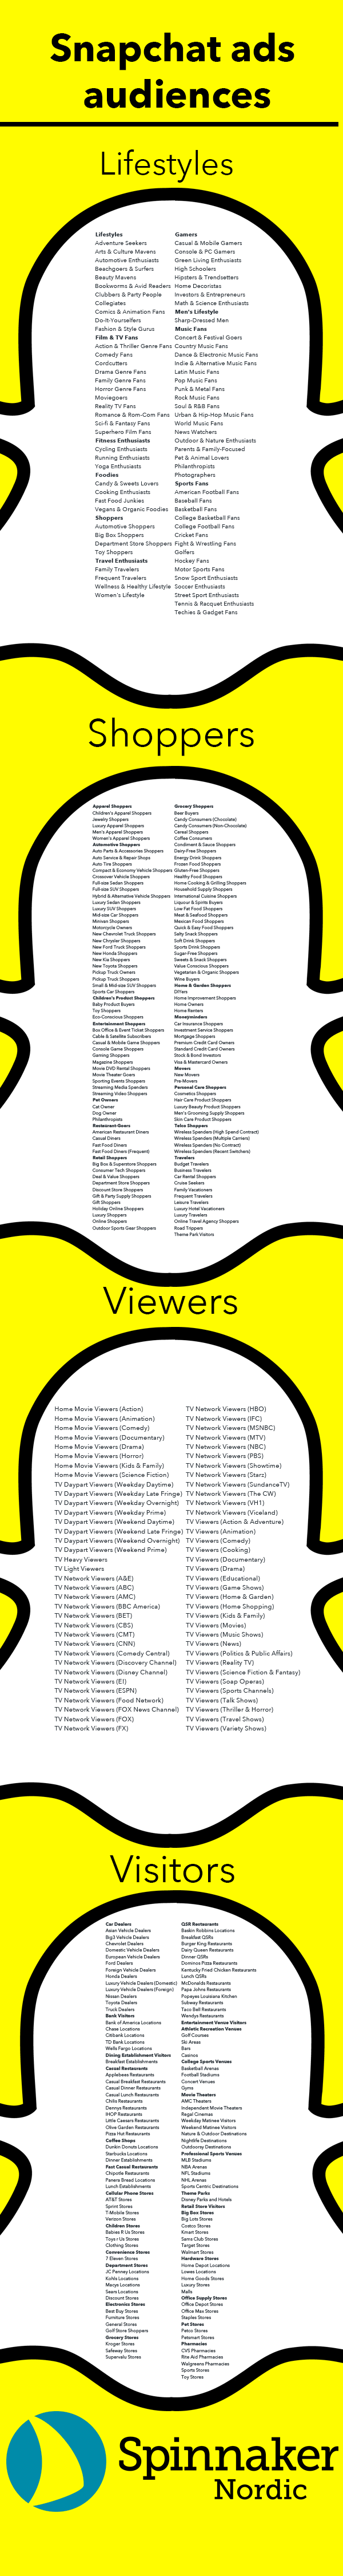 Snapchat Ads Audiences